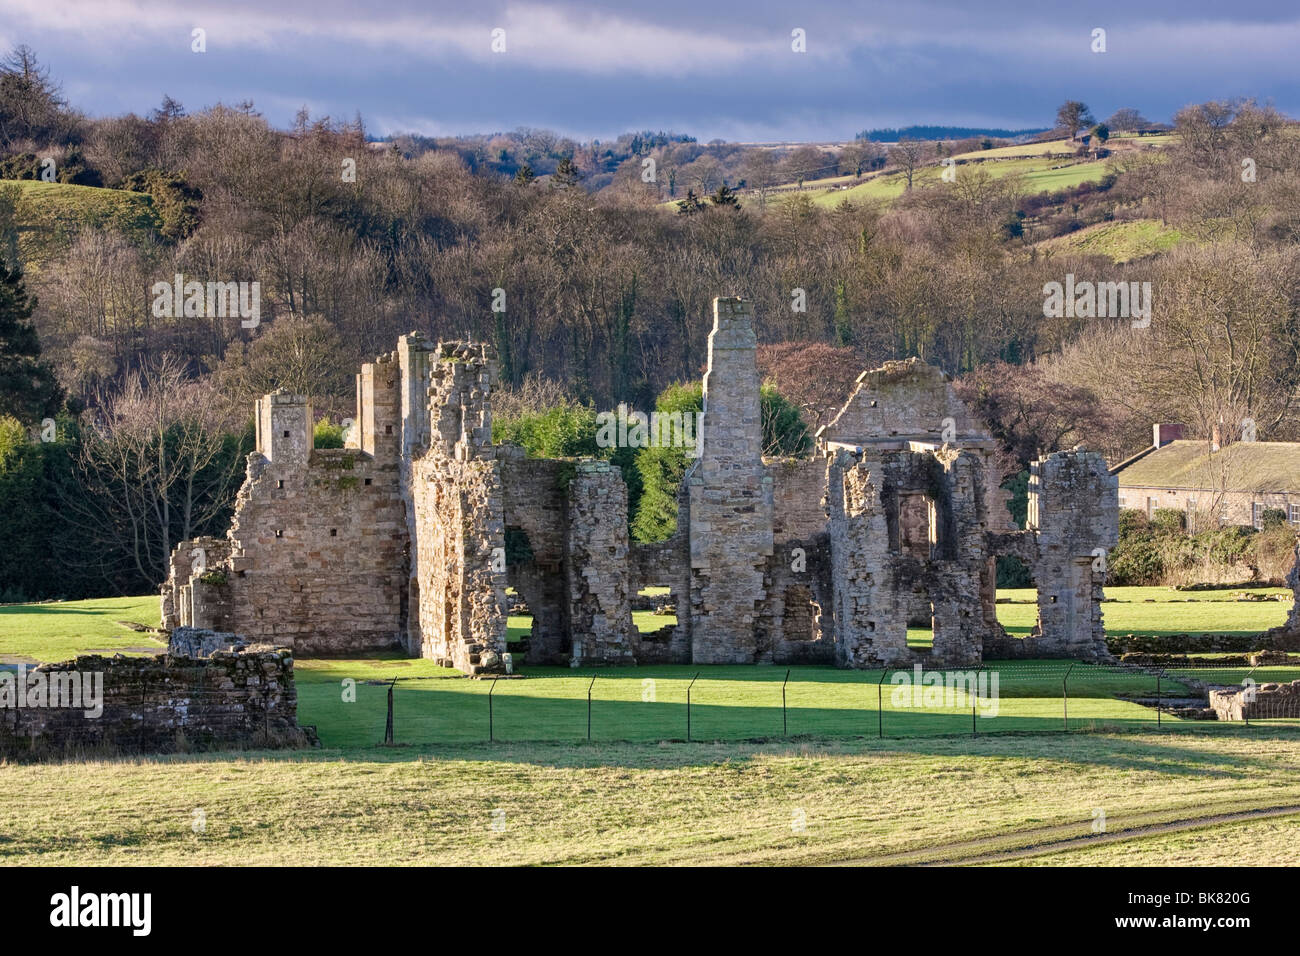 Easby Abbey near Richmond, North Yorkshire, UK - Stock Image